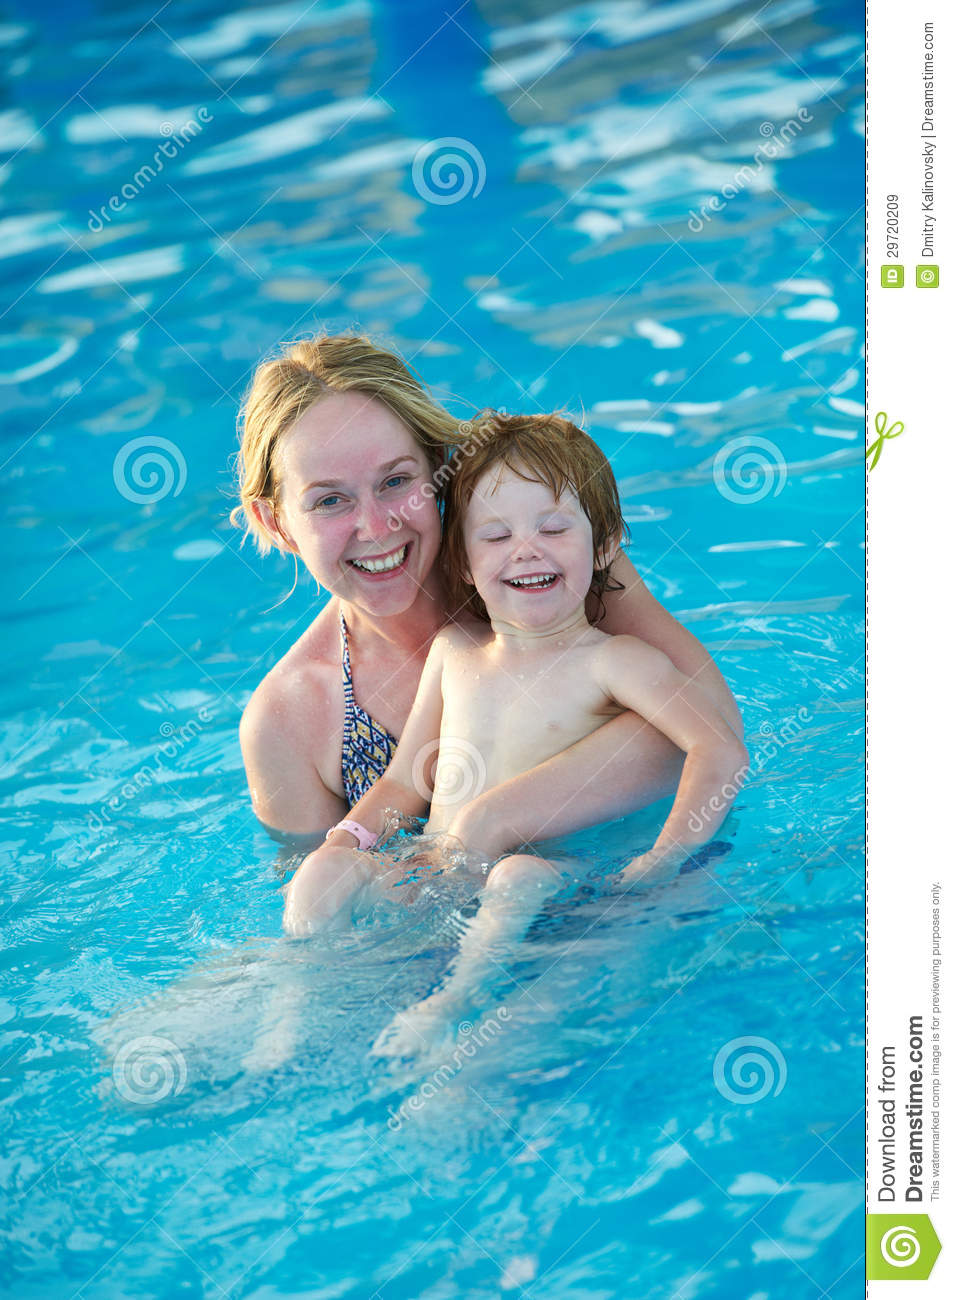 Woman And Child In Resort Swimming Pool Stock Image - Image ...